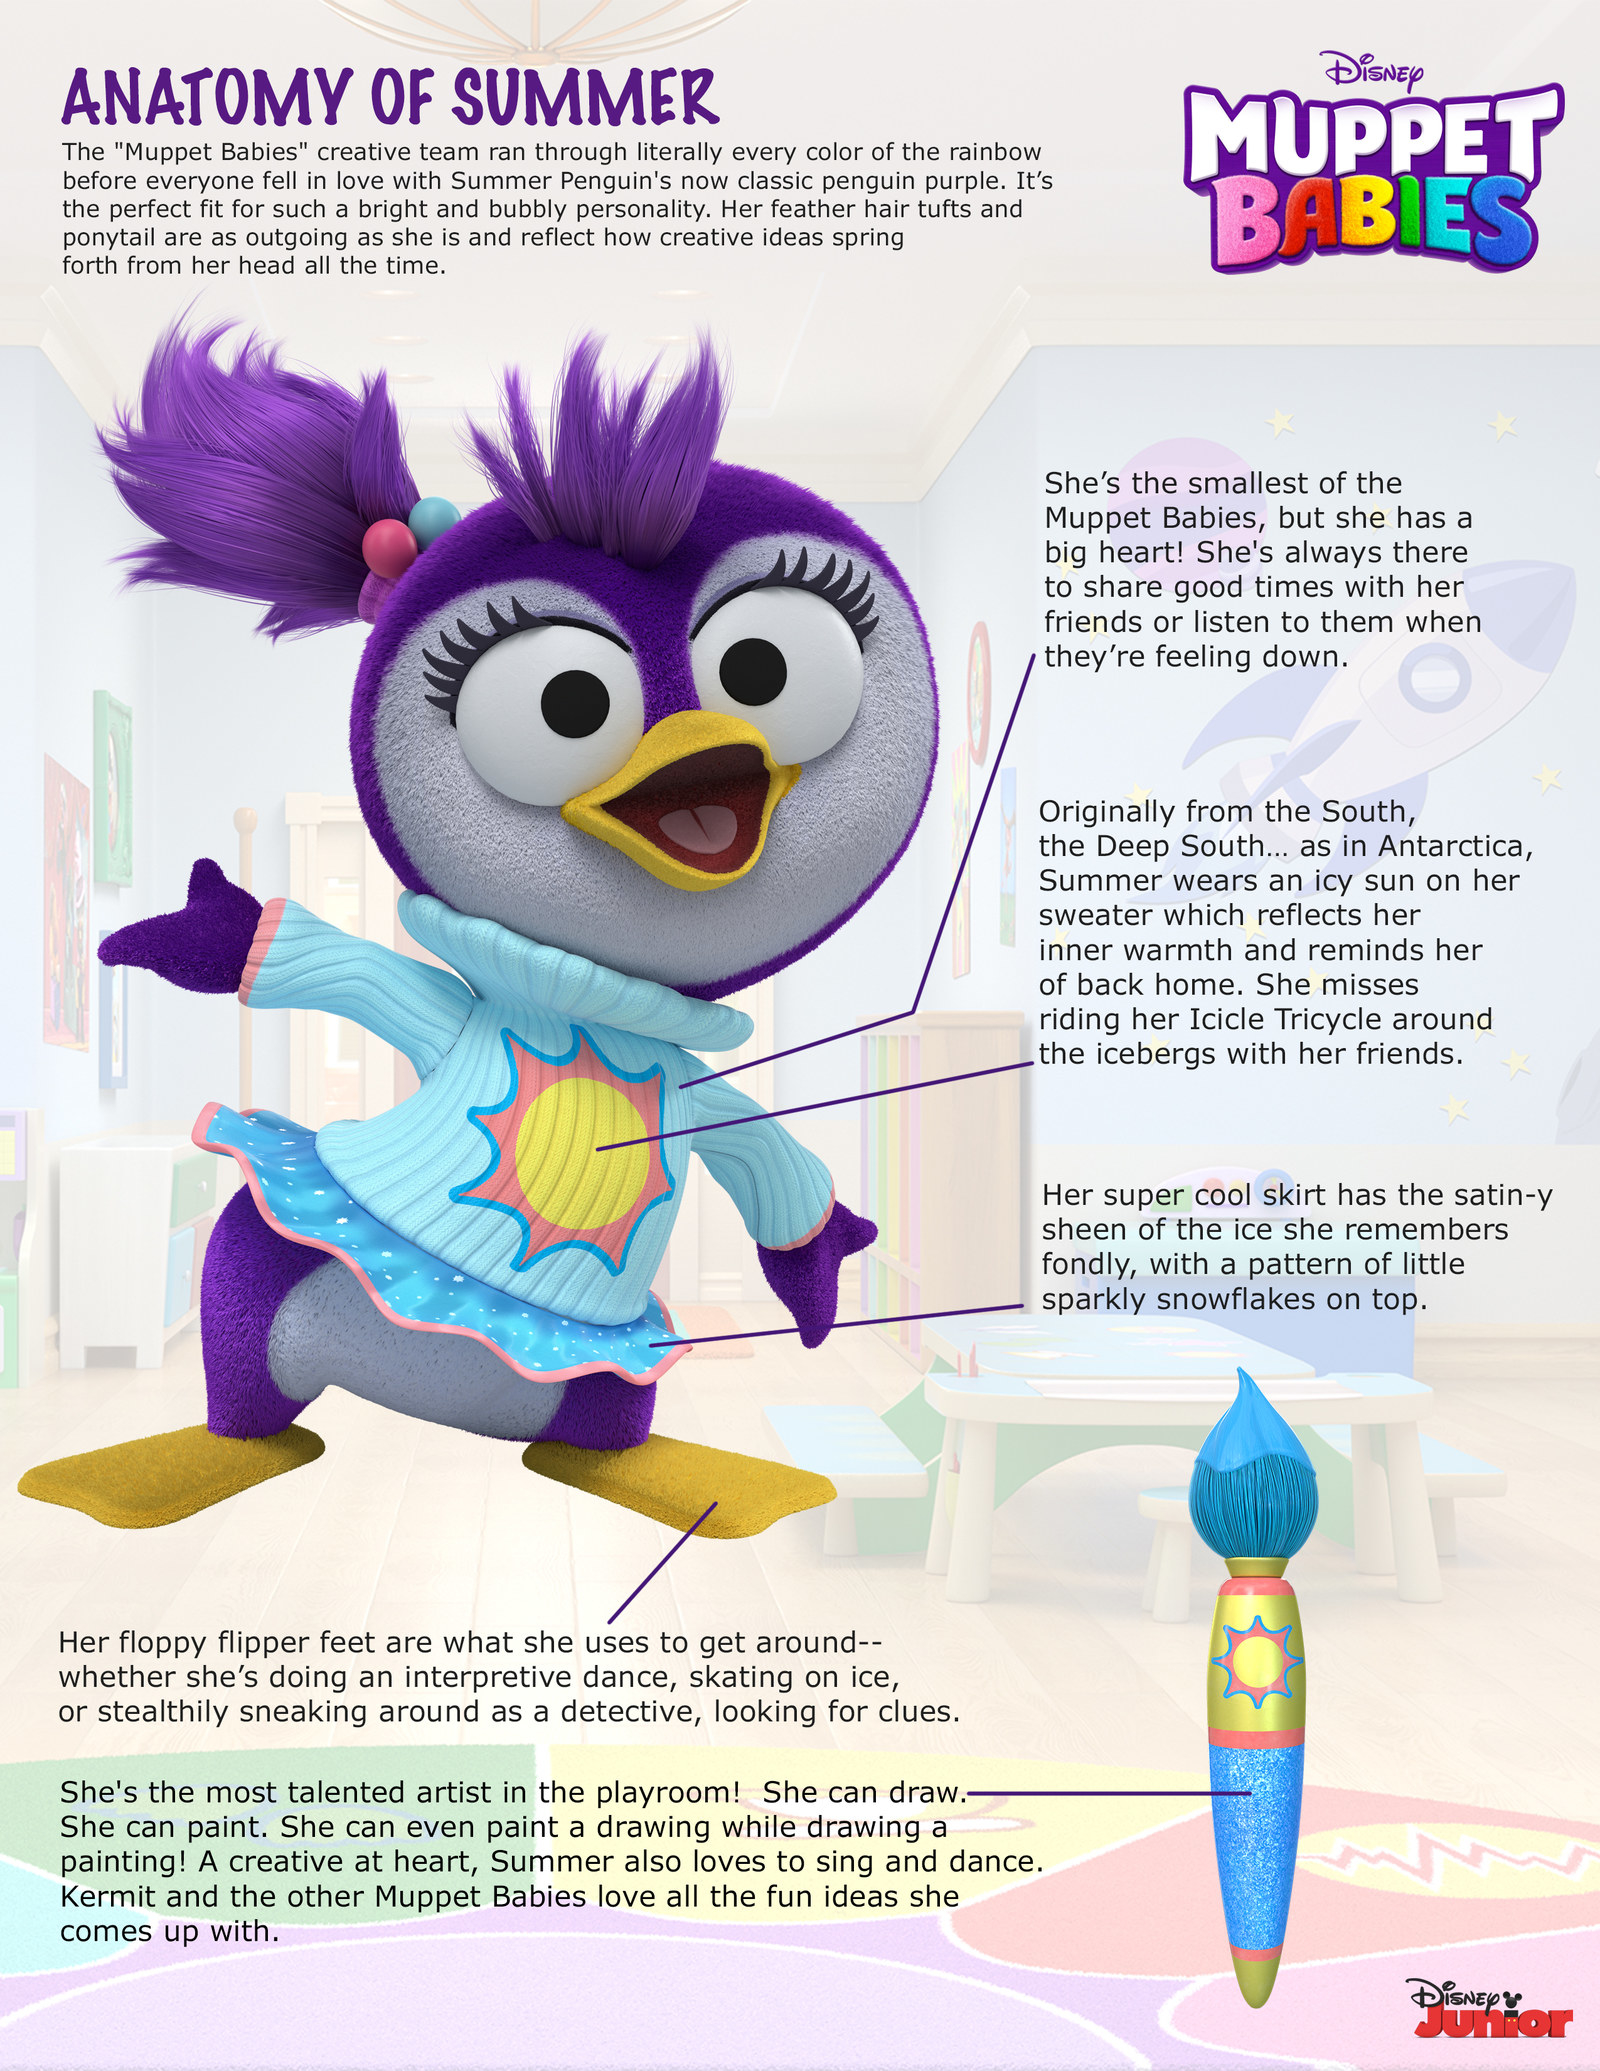 summer penguin disney wiki fandom powered by wikia